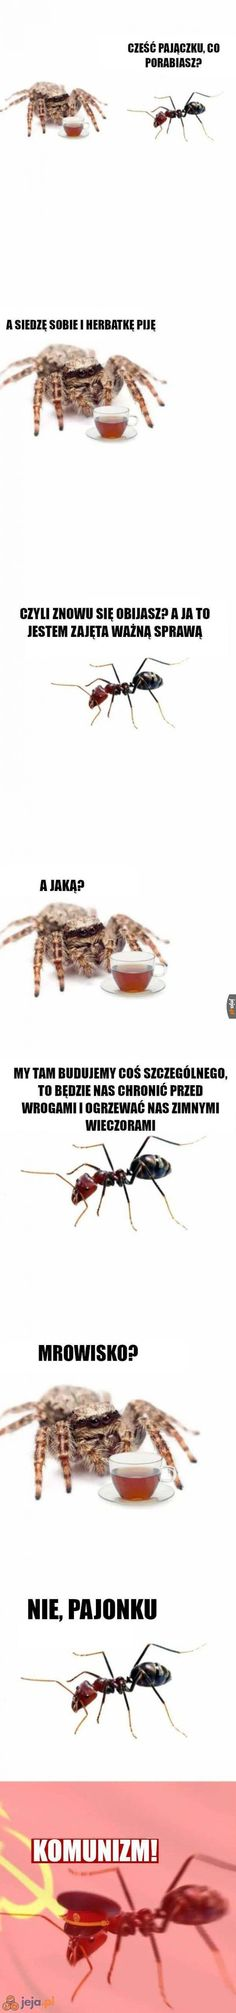 Mróweczki muszą sobie jakoś radzić Very Funny Memes, Wtf Funny, Funny Mems, Nyan Cat, Smile Everyday, Meme Comics, Pokemon, Me Me Me Anime, Best Memes